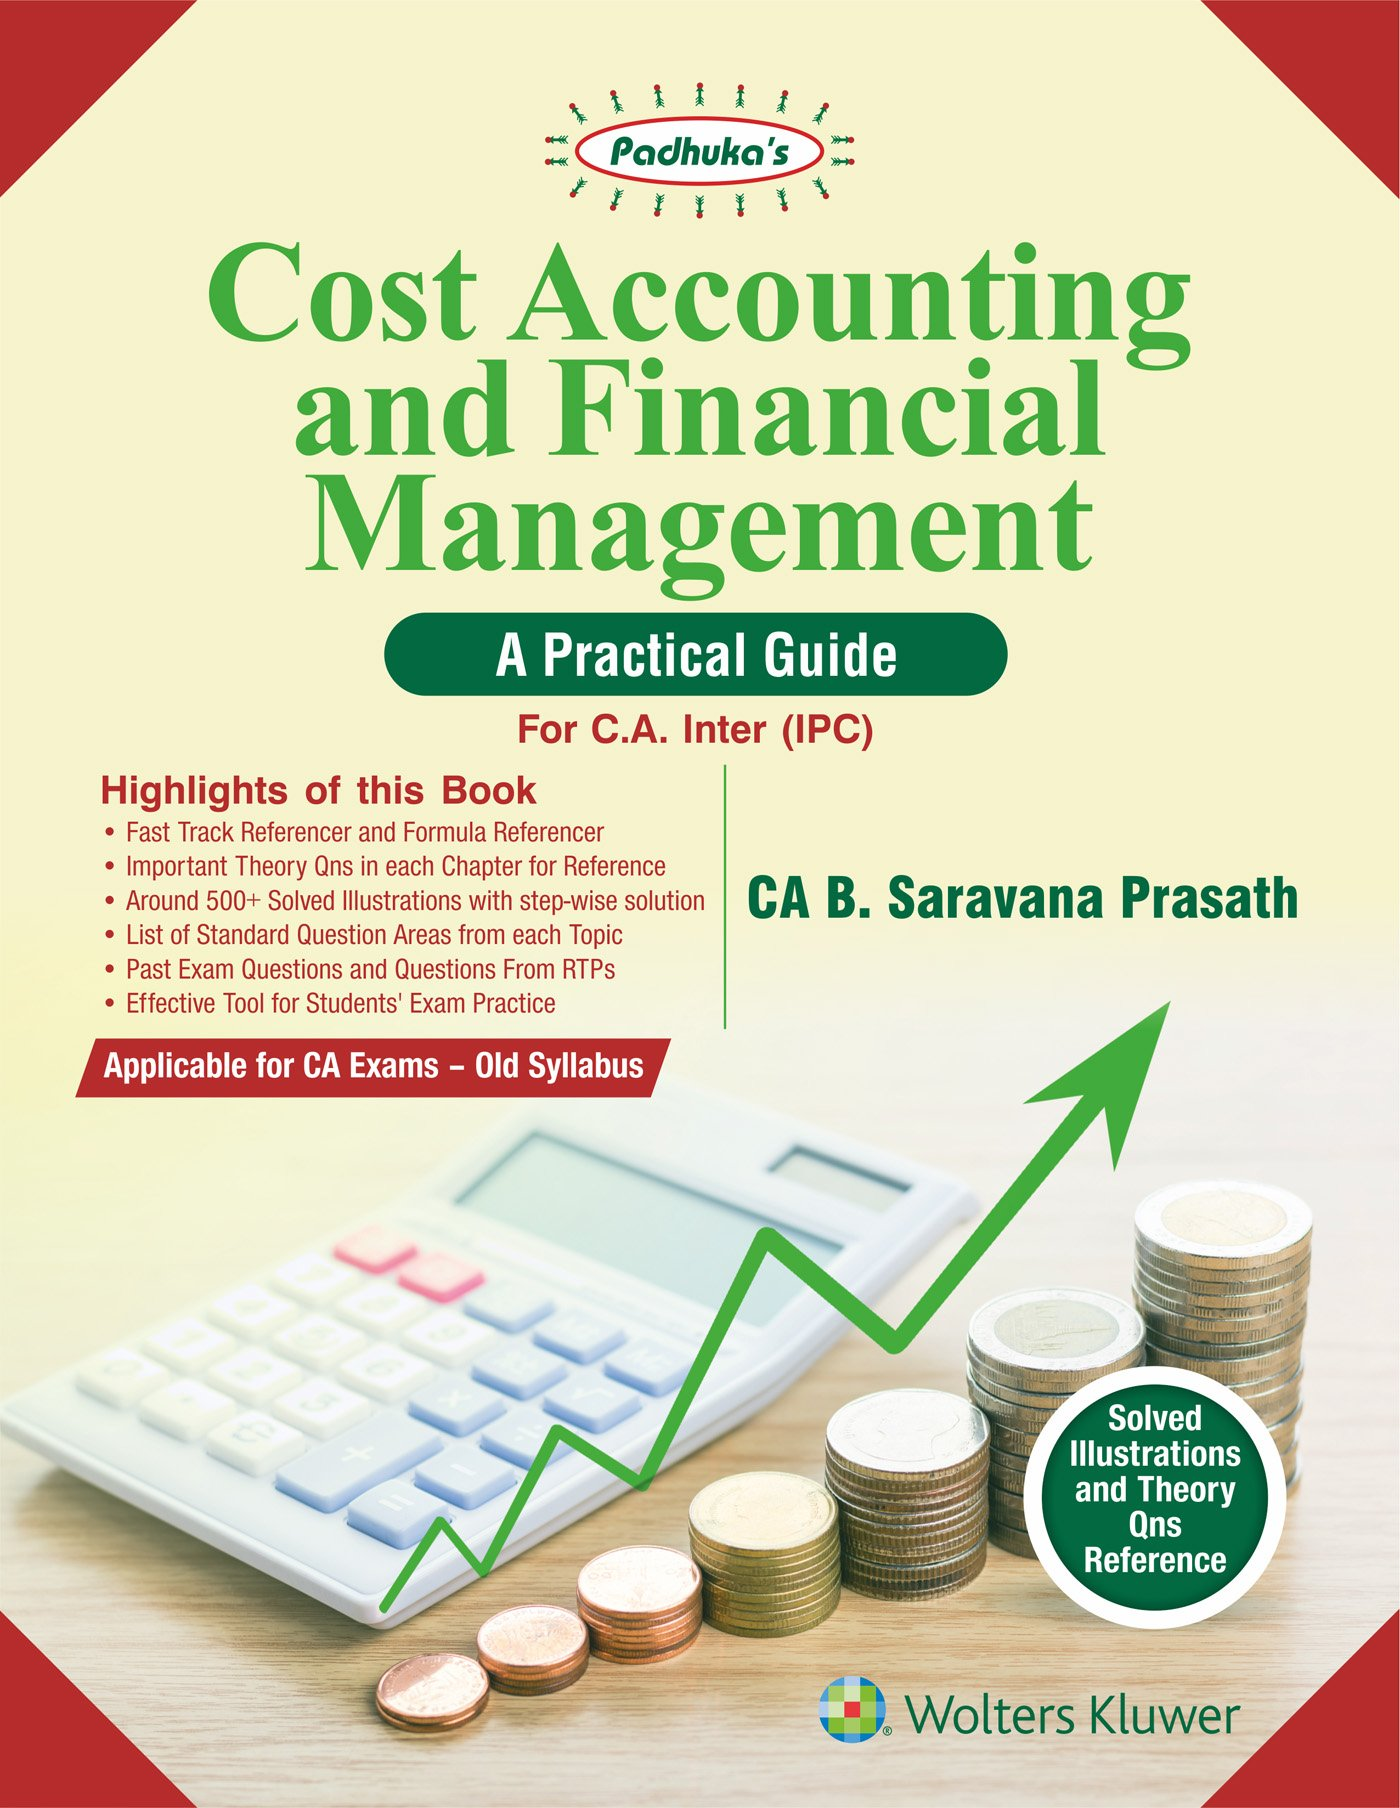 Buy Cost Accounting and Financial Management - A Practical